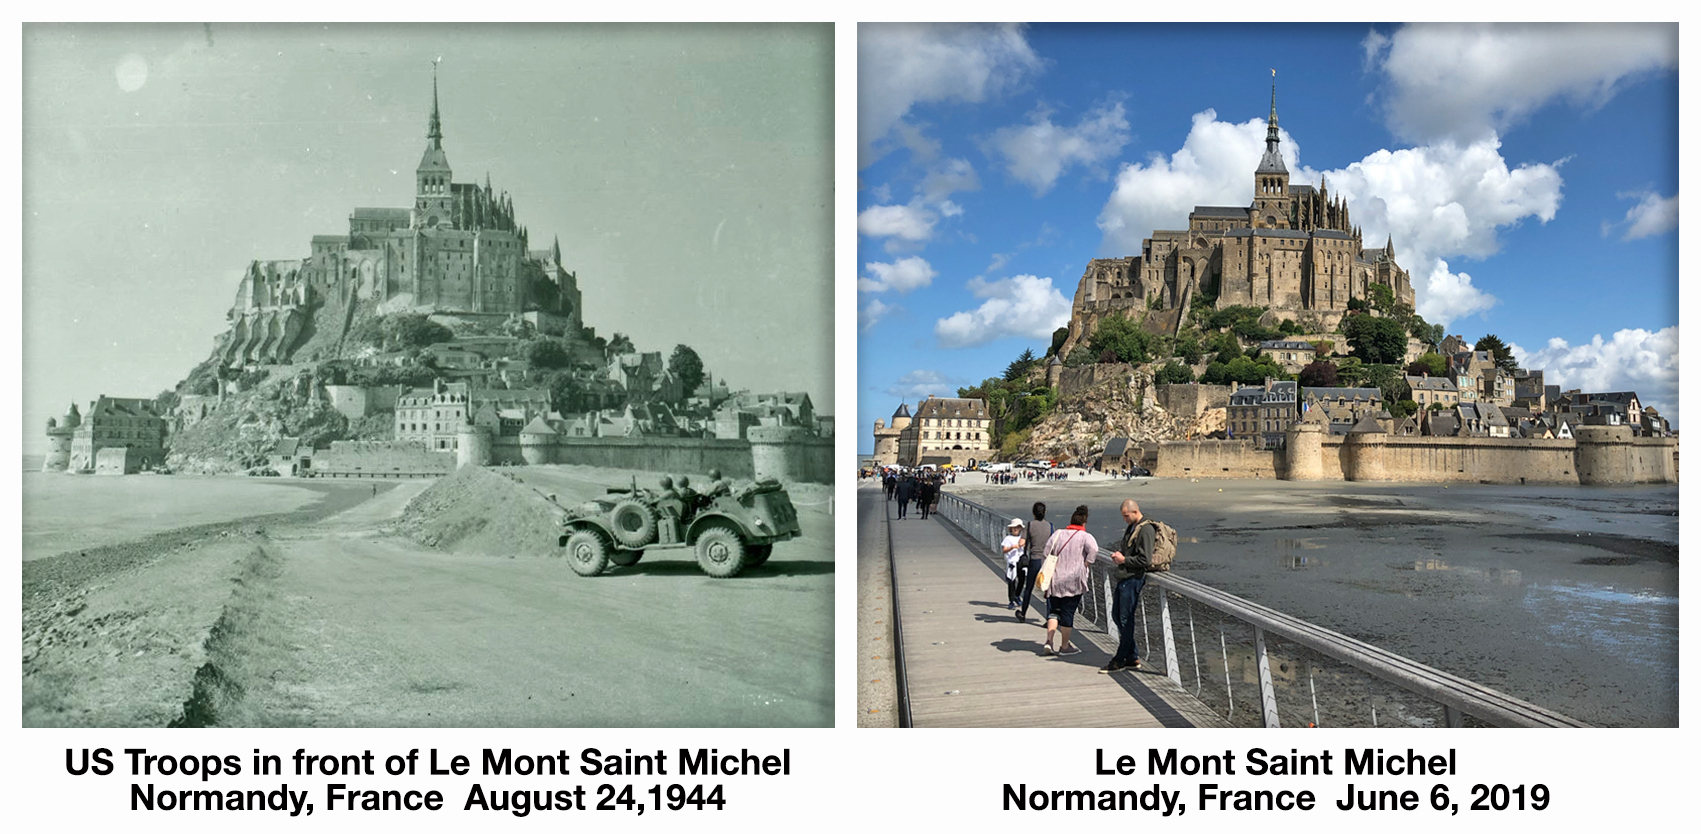 Le Mont Saint Michel Normandy, France August 24,1944 D-Day Normandy France World War 2 Before and after then and now History